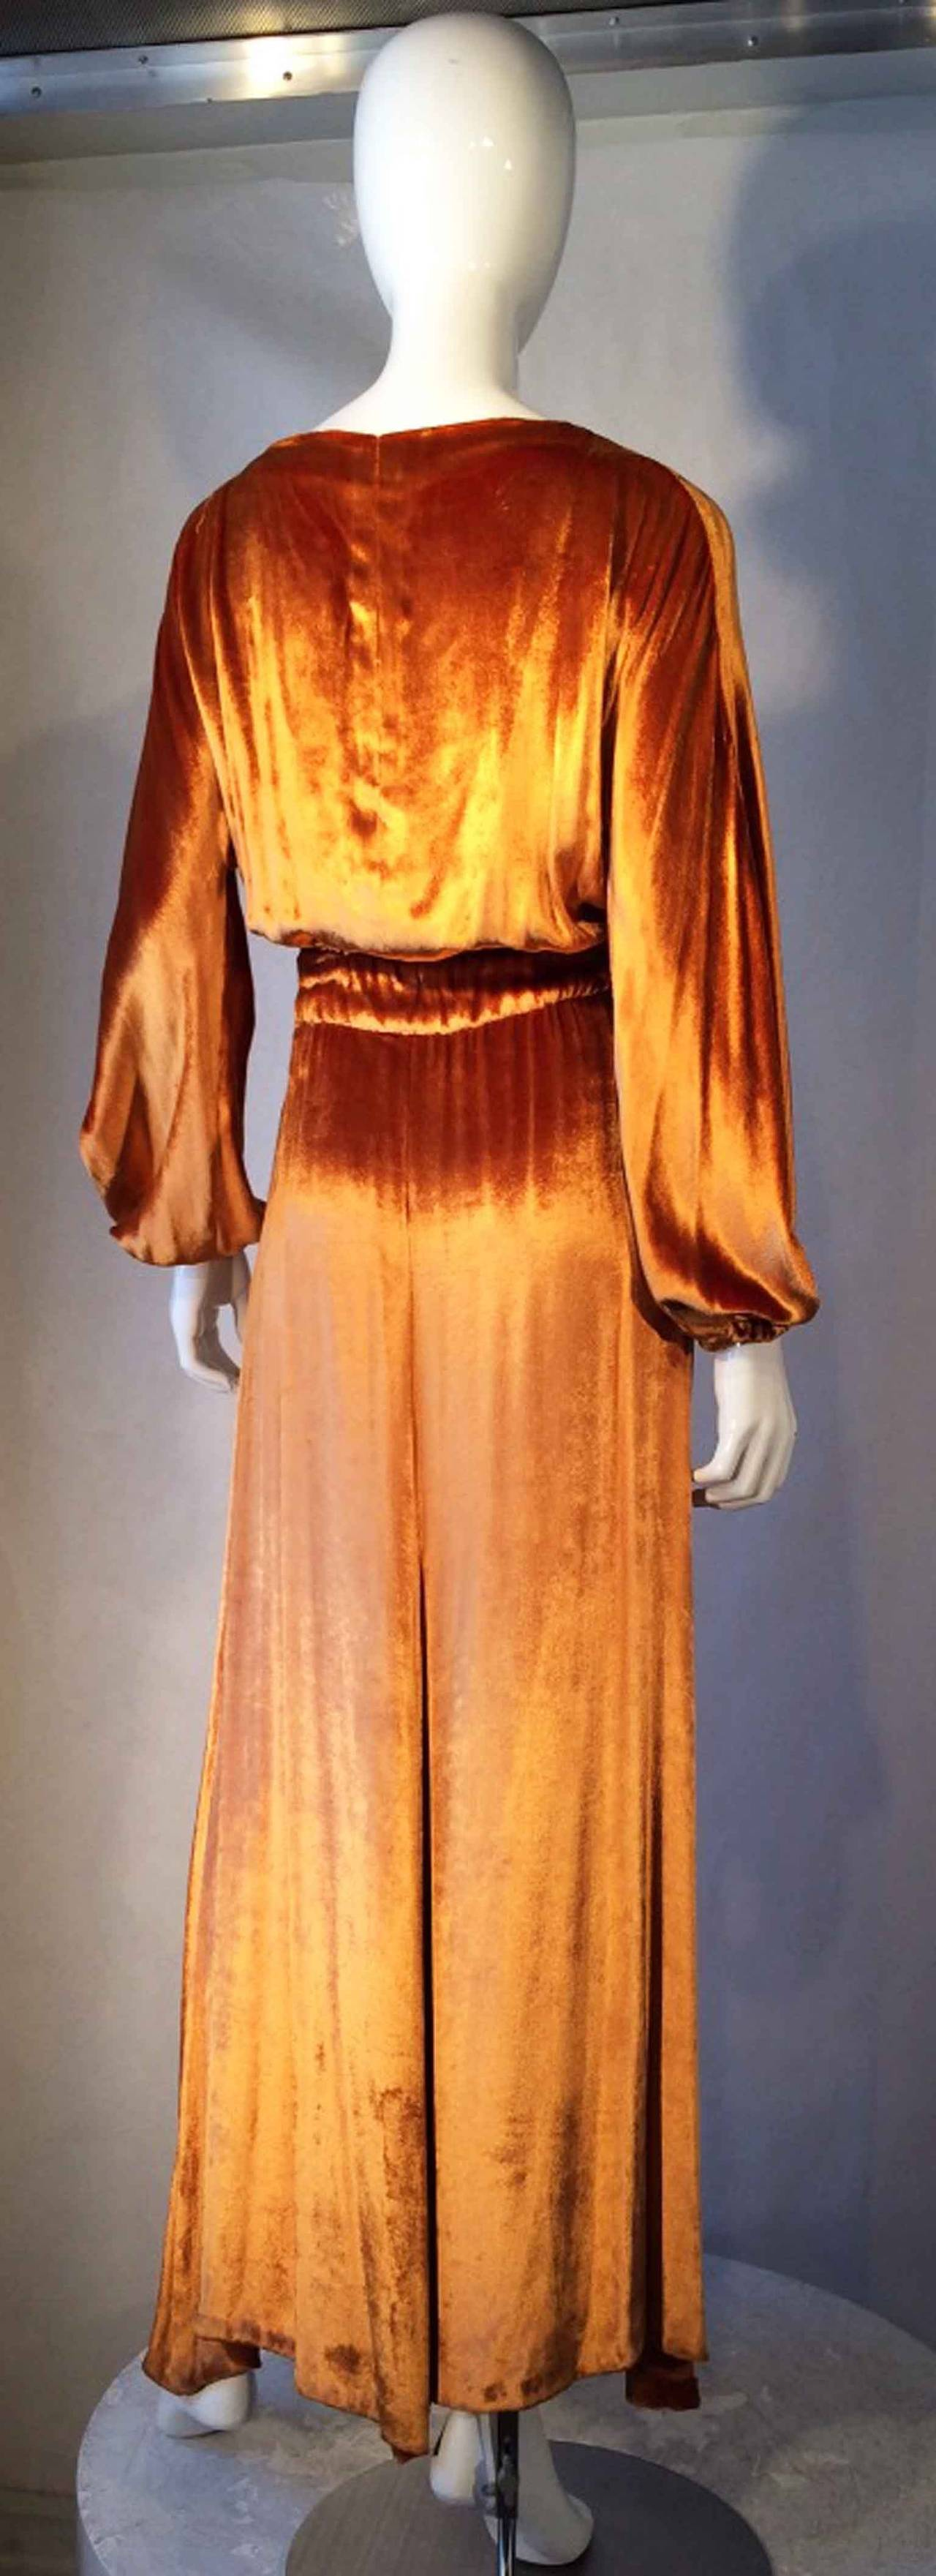 Jean patou haute couture gown for sale at 1stdibs for Haute couture sale